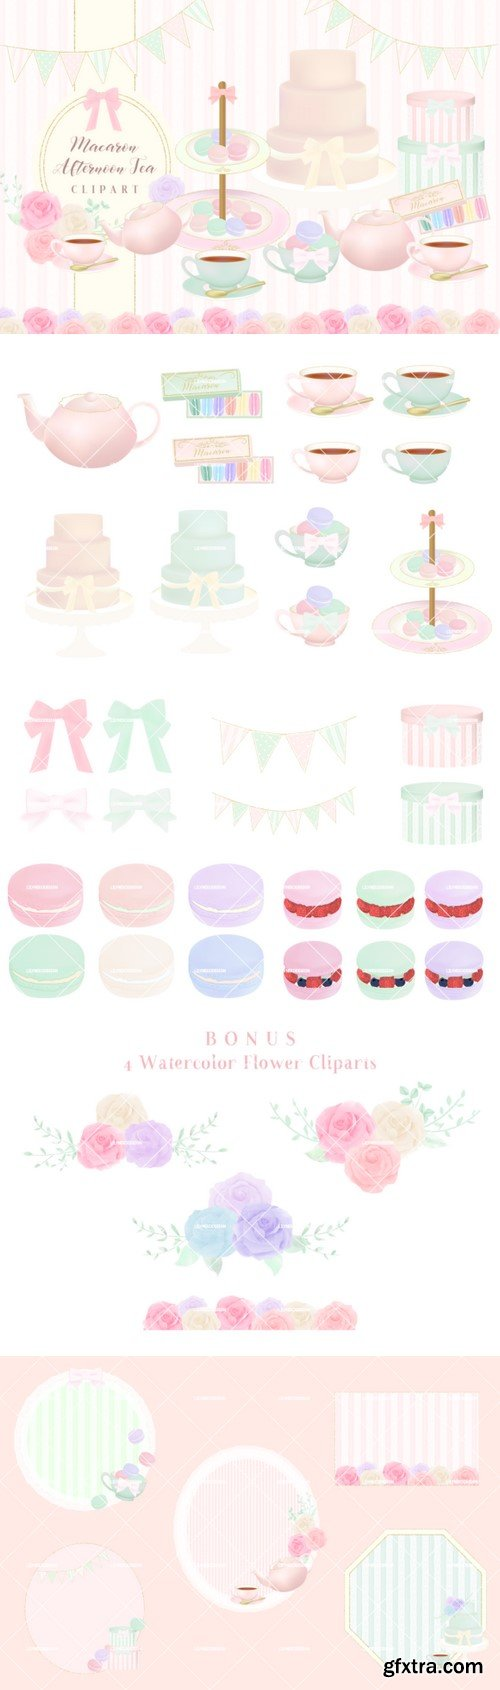 Macaron Afternoon Tea Party Cliparts